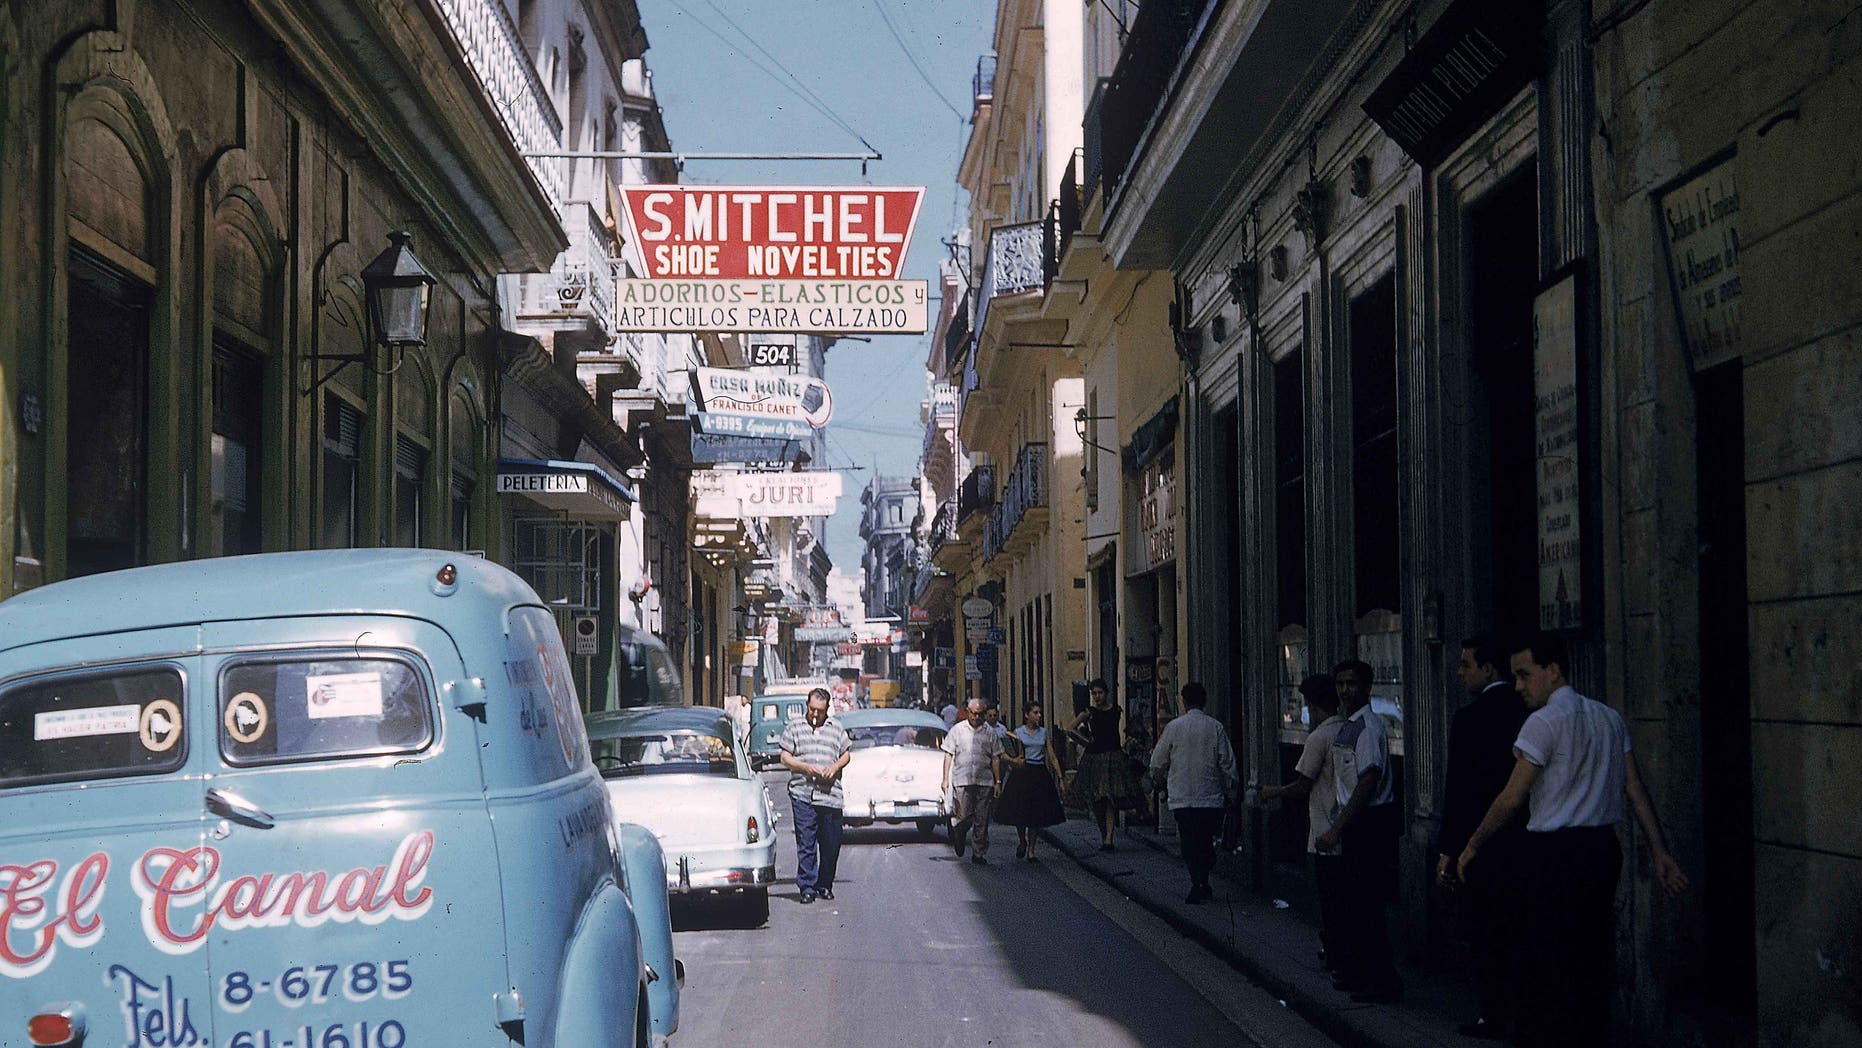 Cars are parked along a narrow street as pedestrians walk in the shade in Havana, Cuba, 1950s.